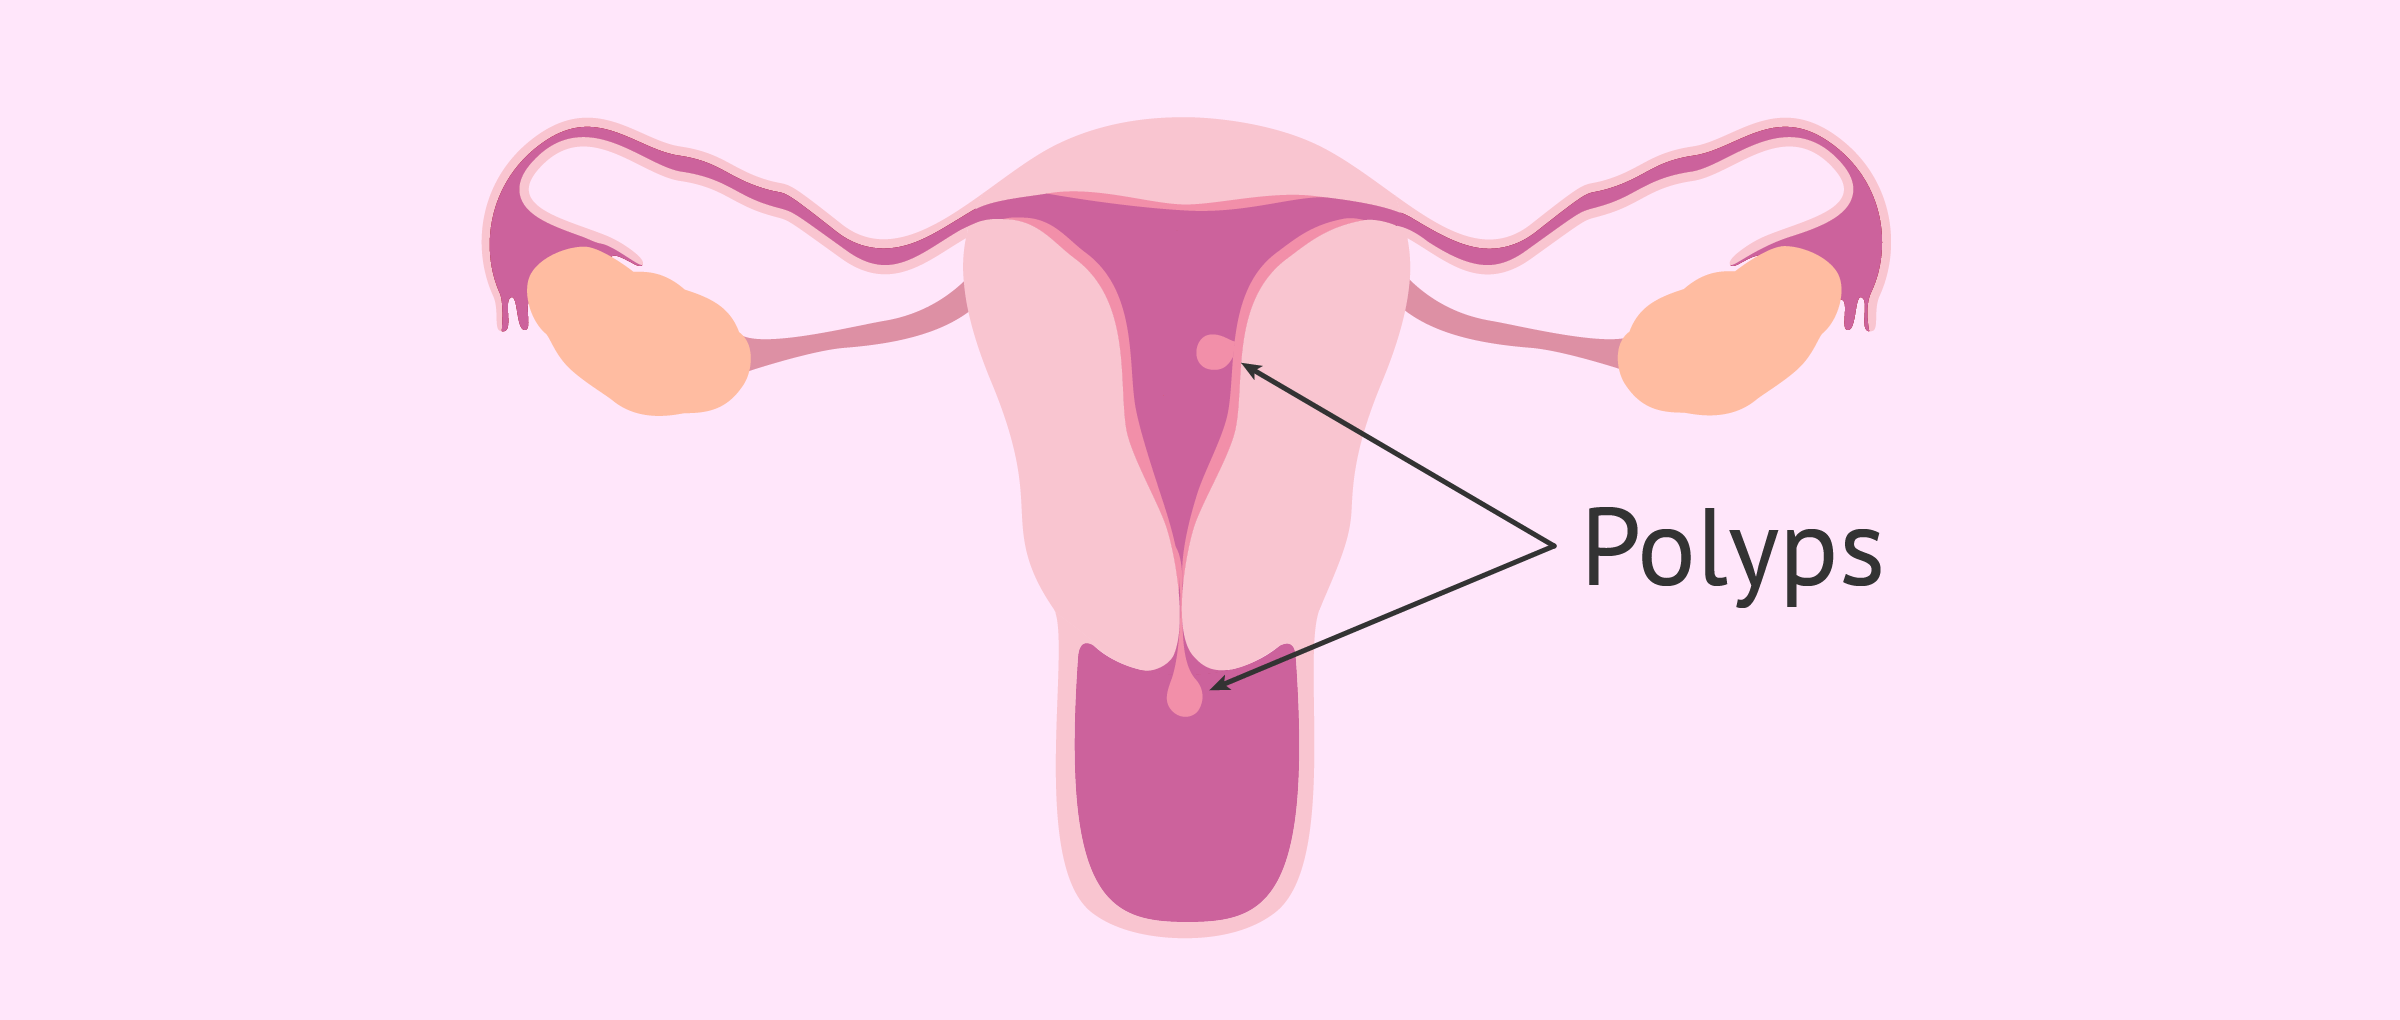 Uterine Polyps & Cancer Risk - Can They Become Cancerous?